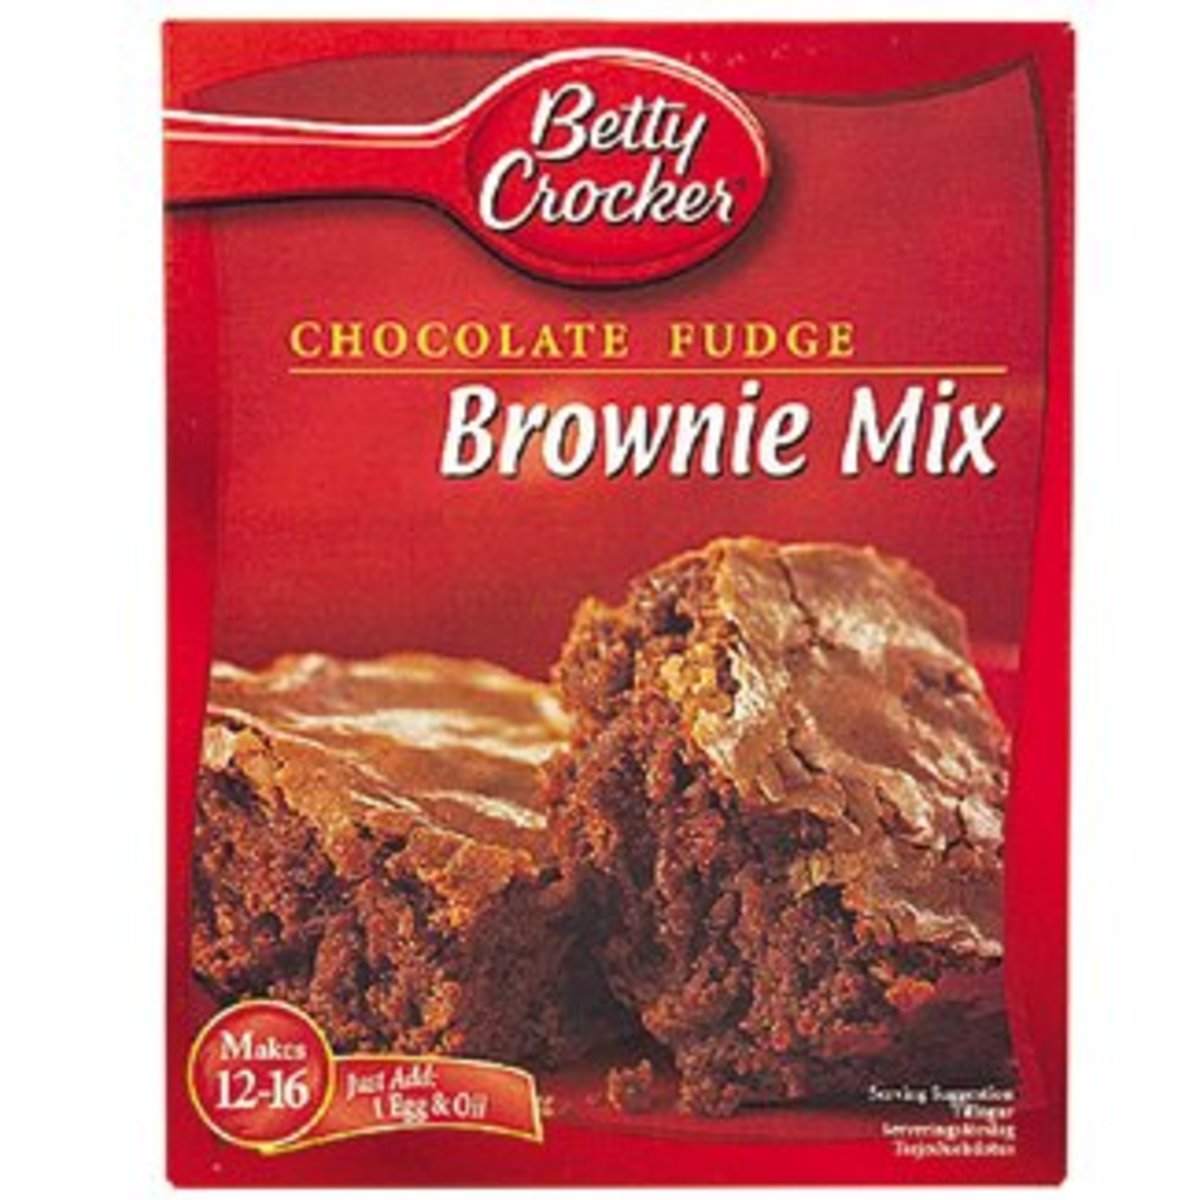 15 Ways To Doctor A Brownie Mix